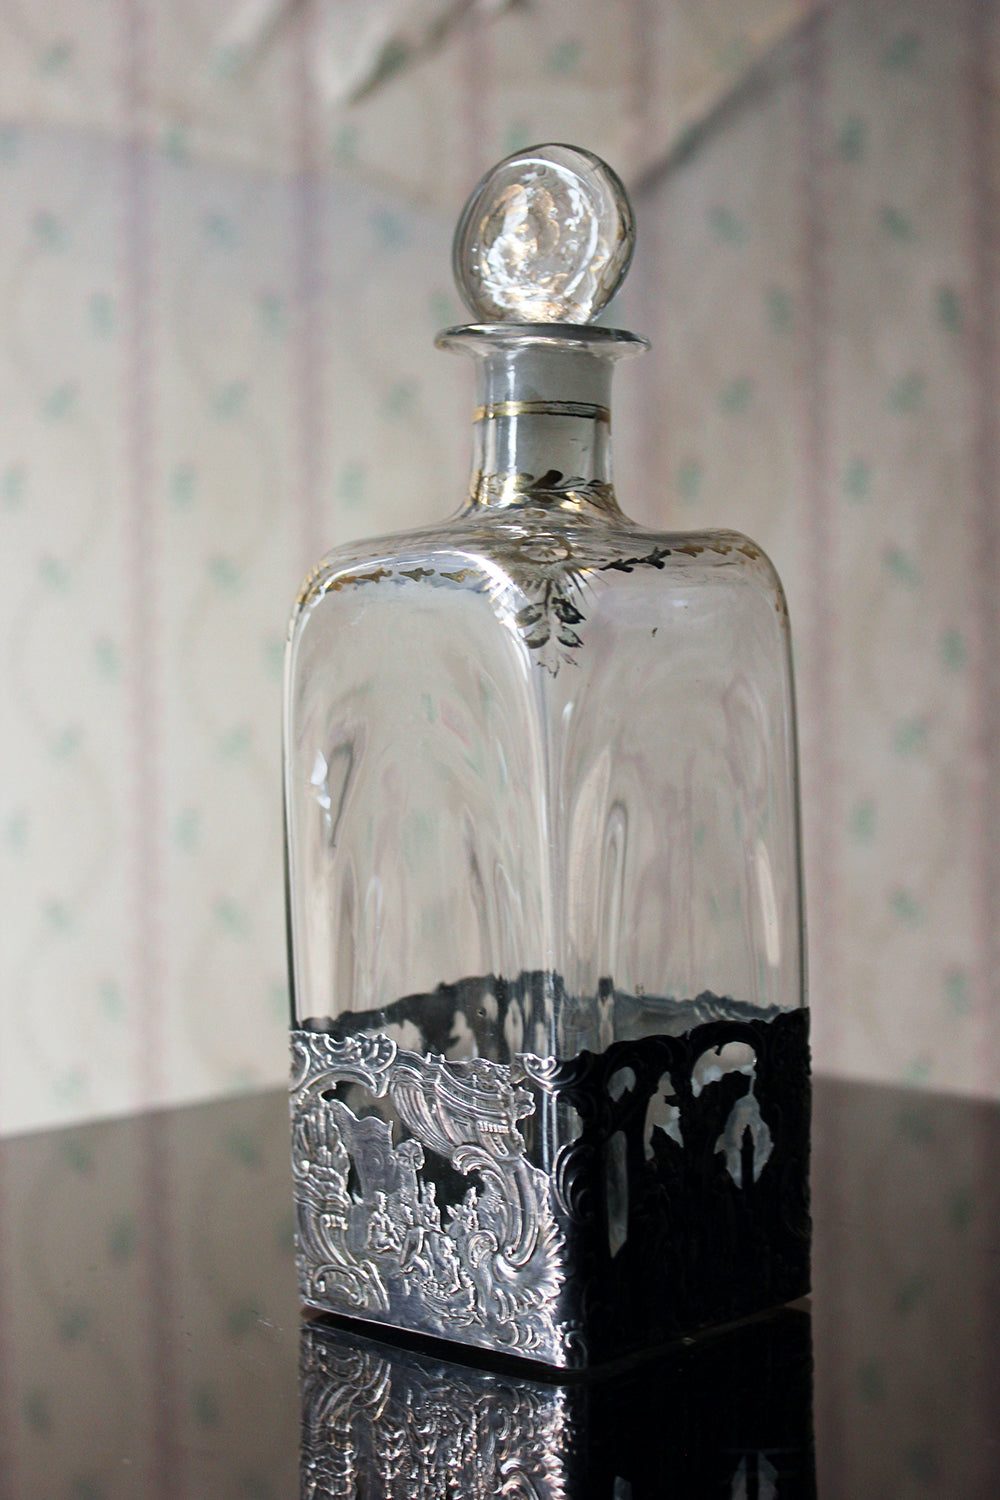 An Attractive Early 20thC German Glass & Silver Applied Decanter Imported by Berthold Hermann Muller; London, 1913